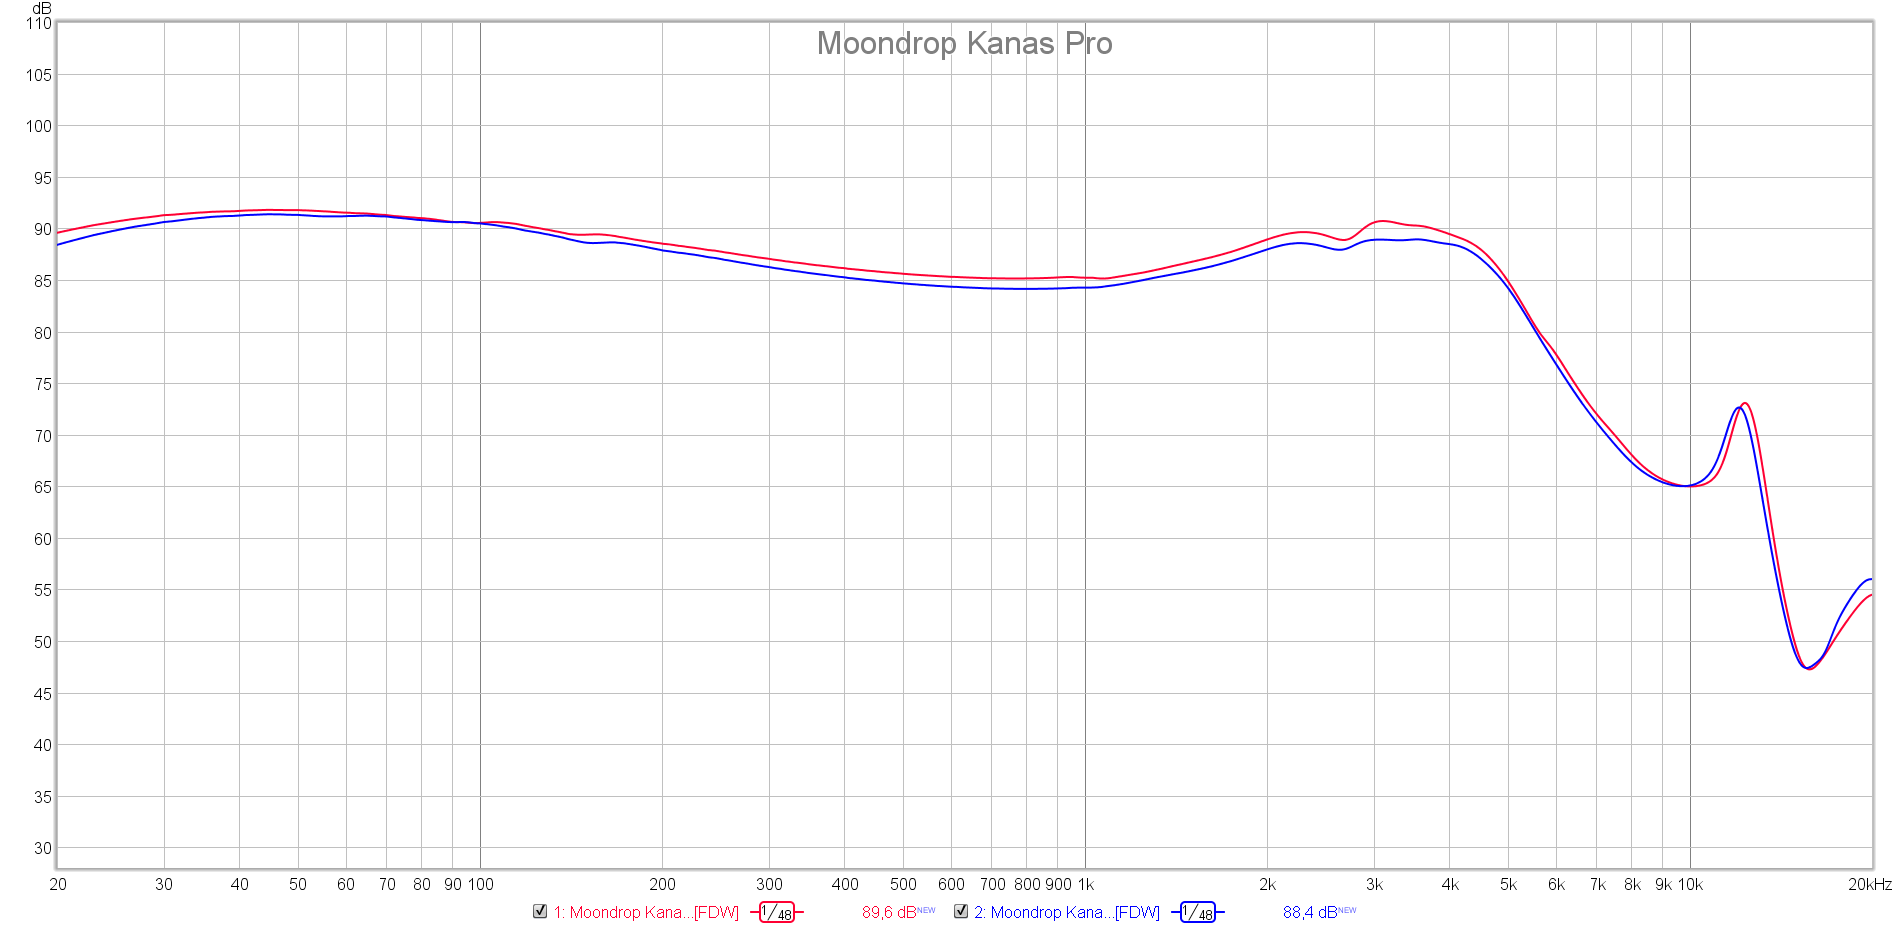 Moondrop Kanas Pro | Headphone Reviews And Discussion - Head